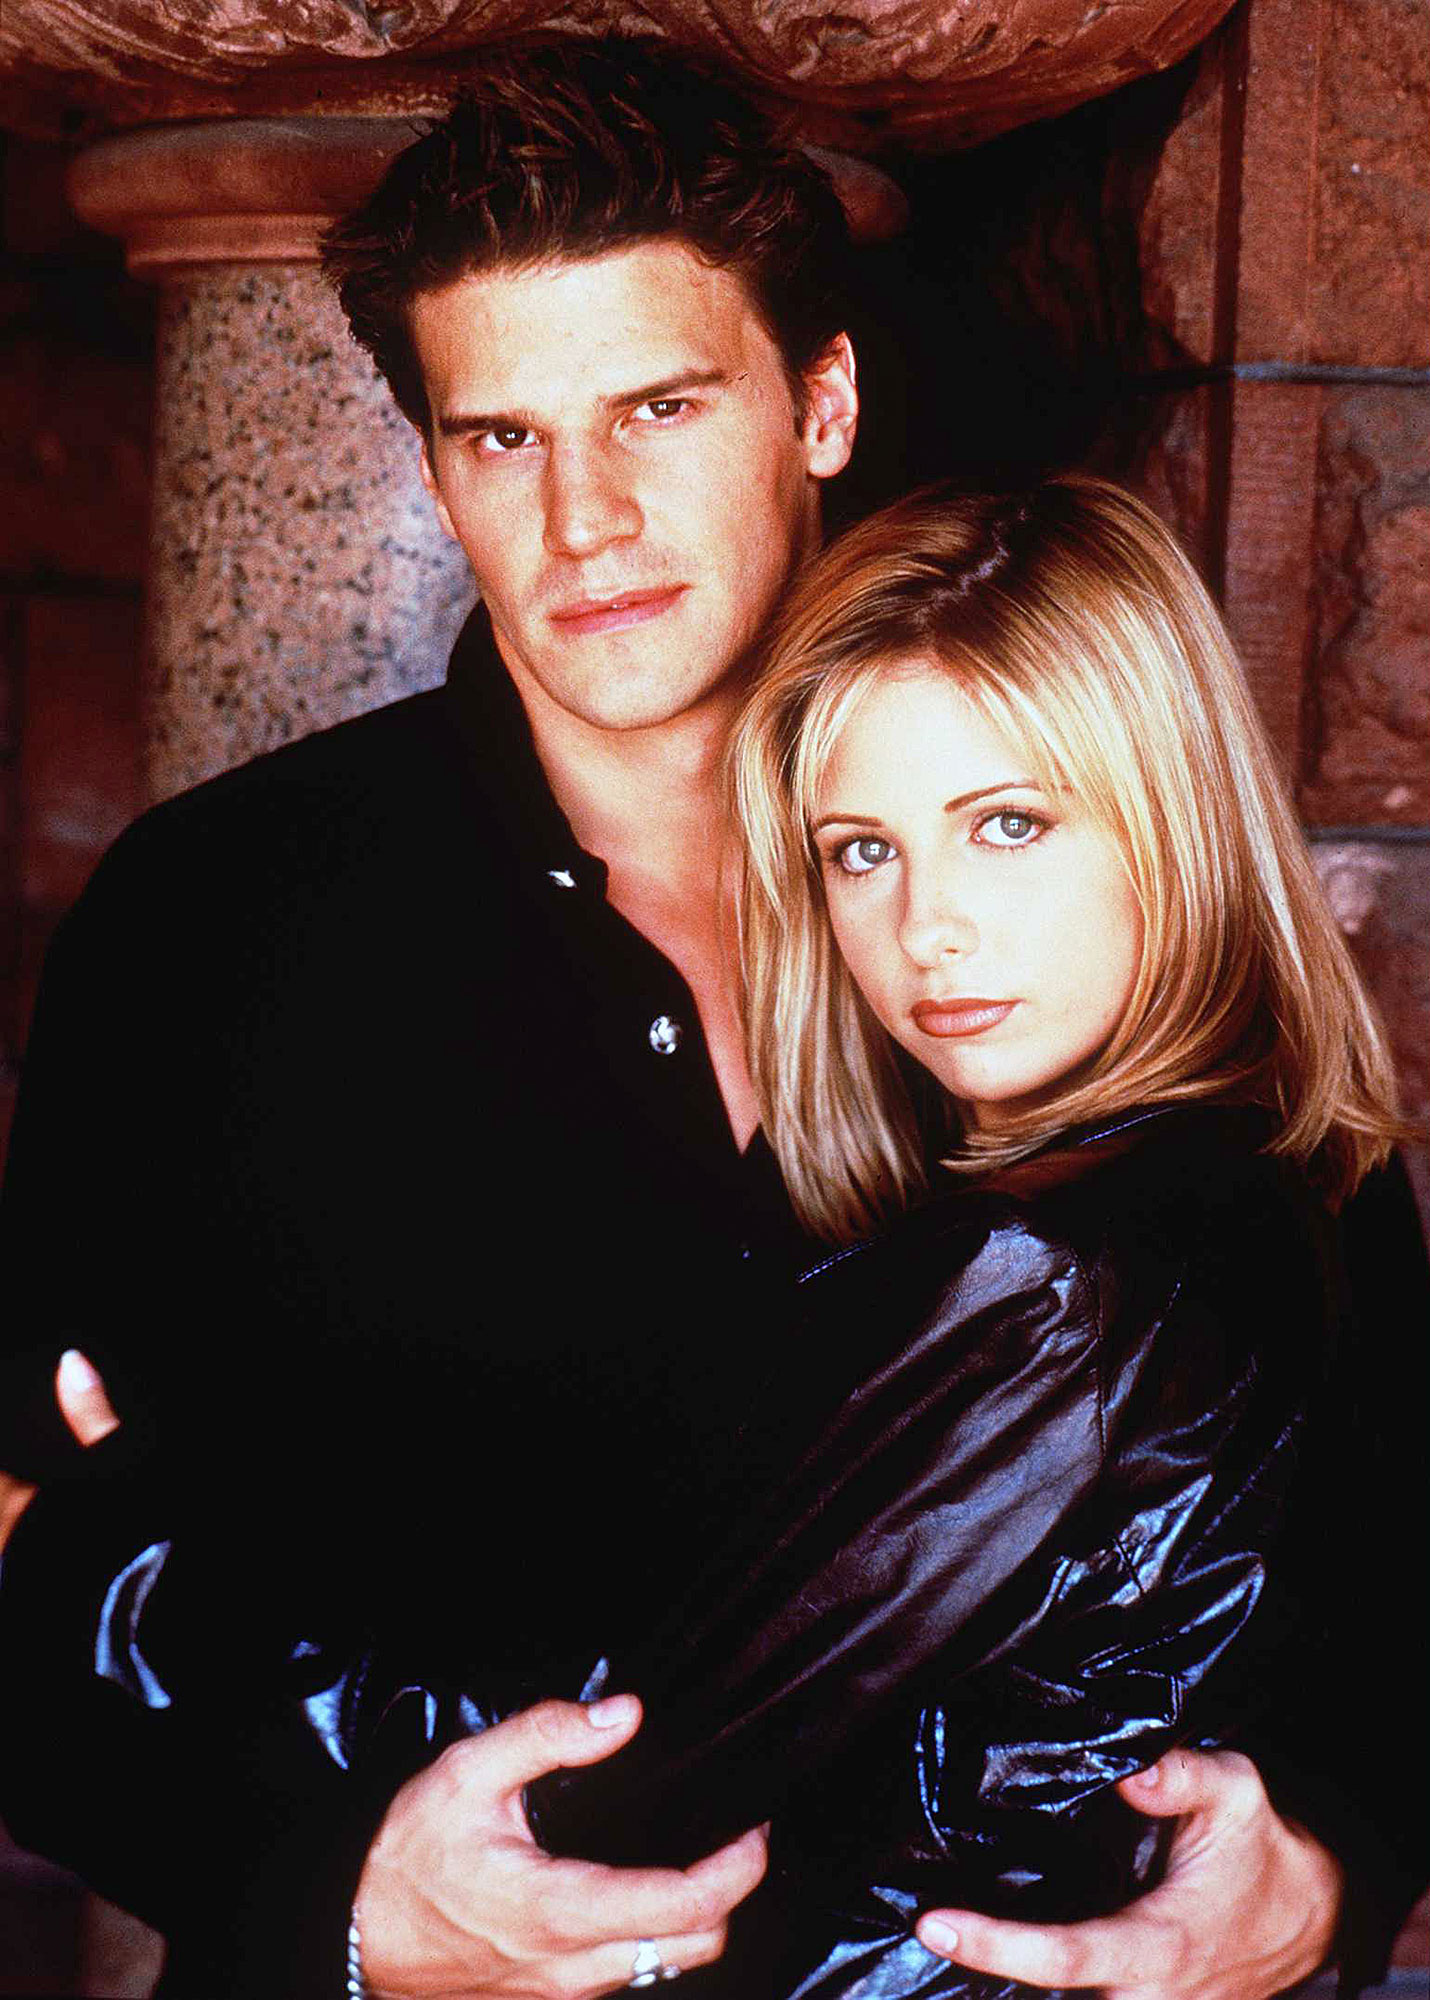 Best TV Couples Buffy The Vampire Slayer Sarah Michelle Gellar David Boreanaz - Show: Buffy the Vampire Slayer Actors: David Boreanaz and Sarah Michelle Gellar Networks: The WB and UPN Seasons: 7